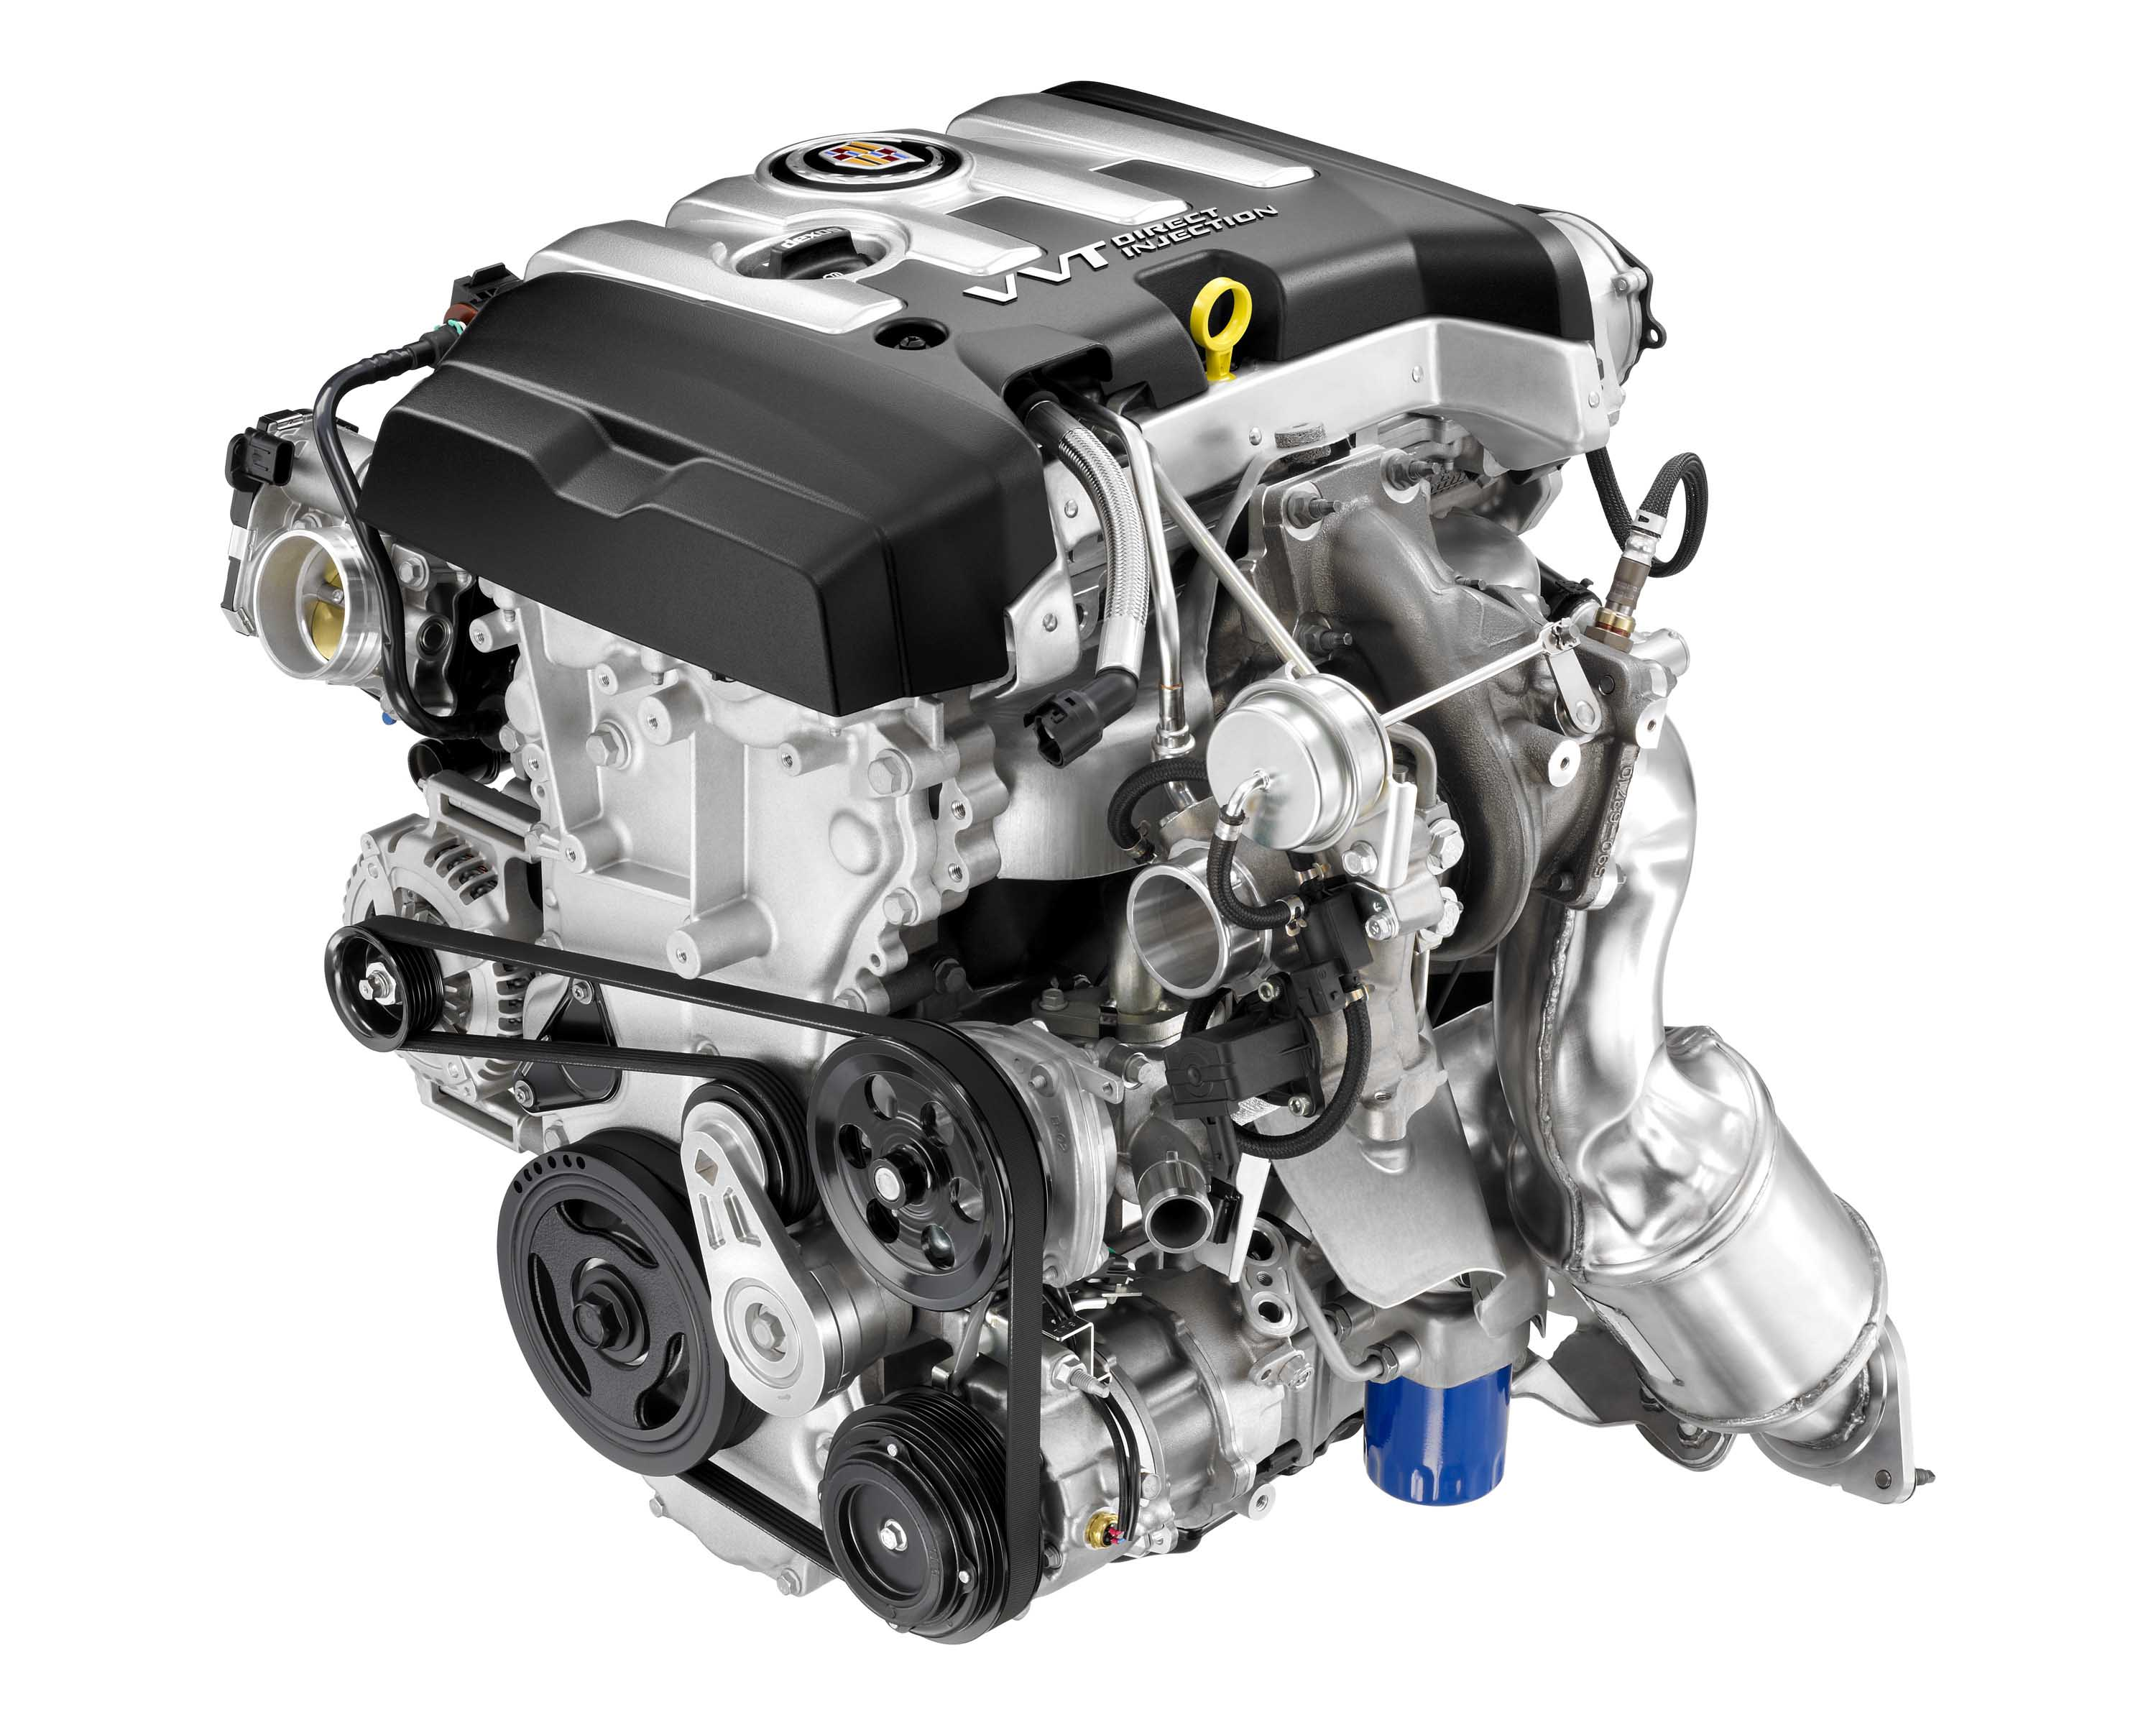 New 2.0L Turbo Engine Boosts the Cadillac ATS